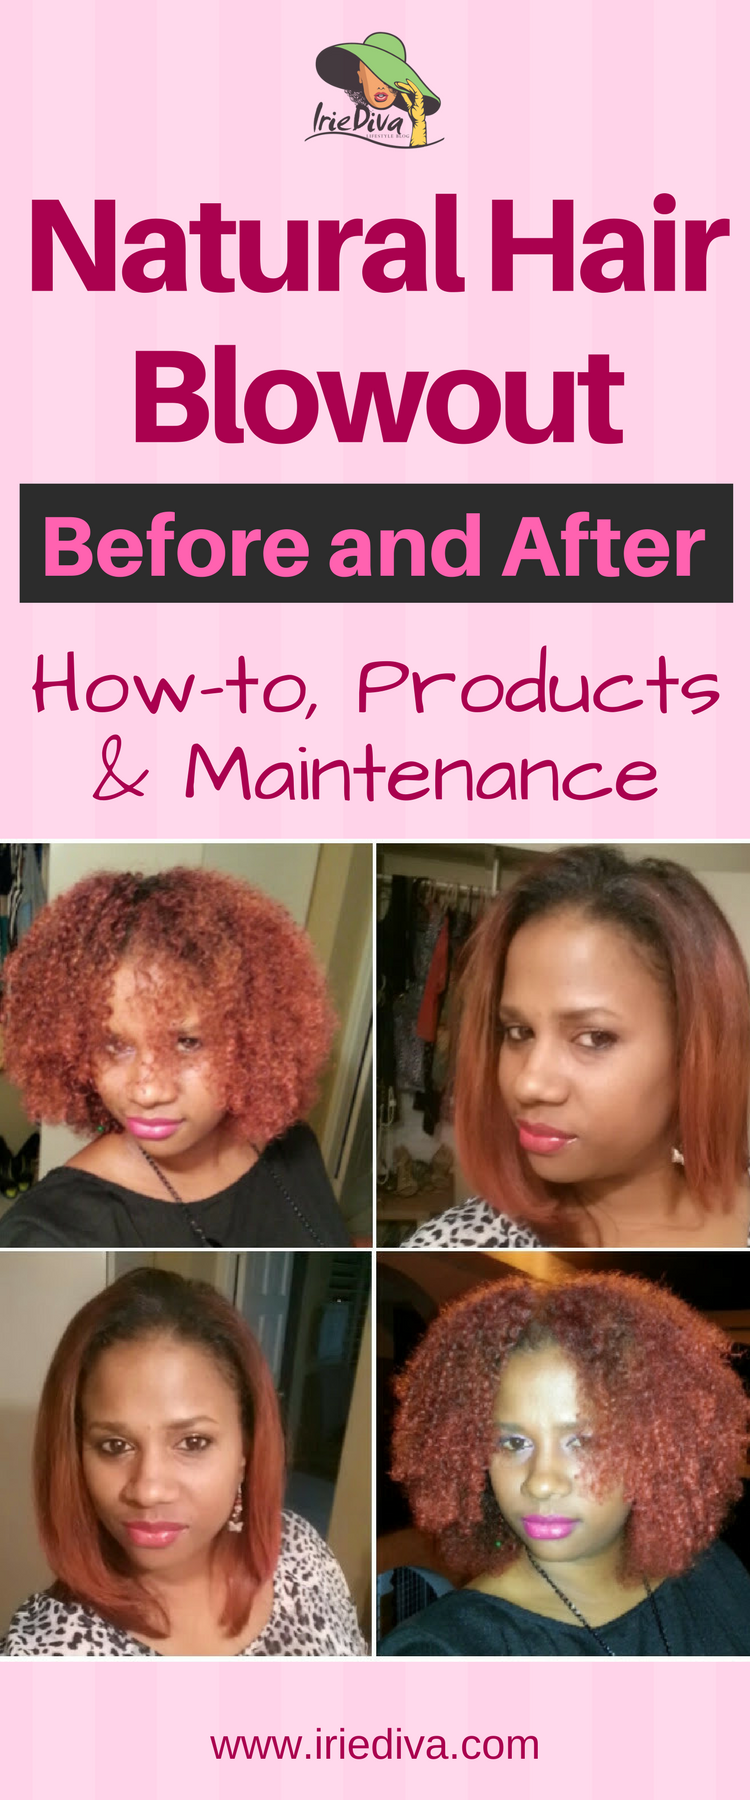 How to blow out natural hair, before and after pictures of long hair natural blow out and short hair natural blowouts plus the products used to maintain